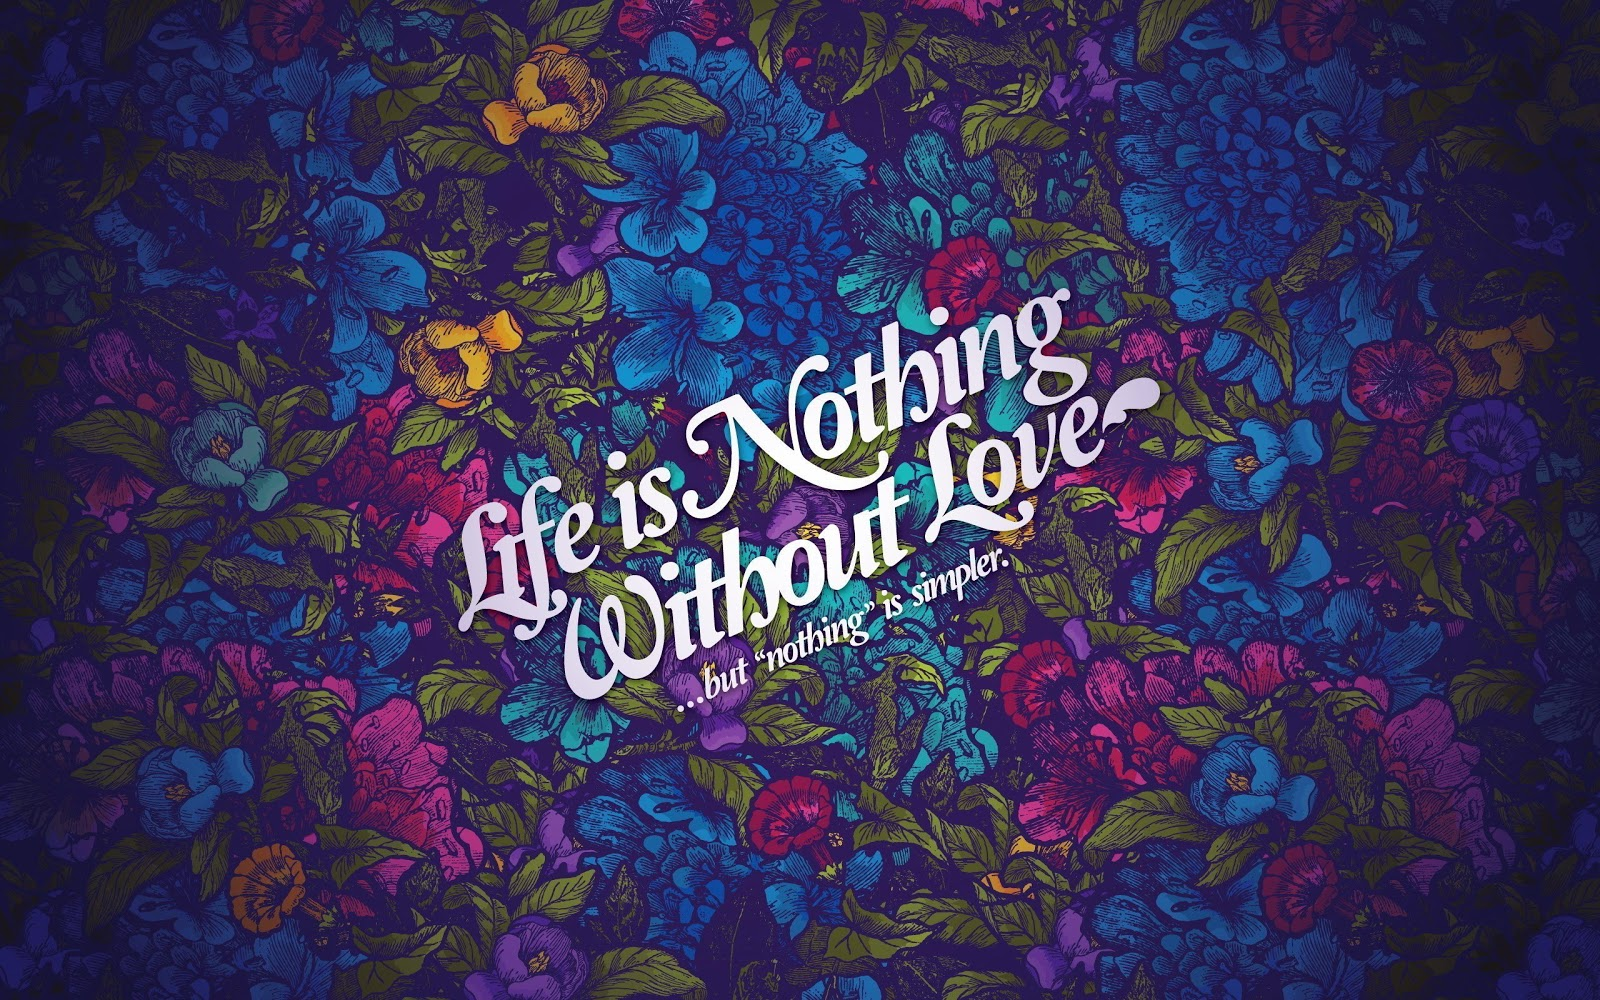 Love Wallpaper Images In Hd : HD Wallpaper Download: Love HD Wallpapers - Life Nothing Without Love